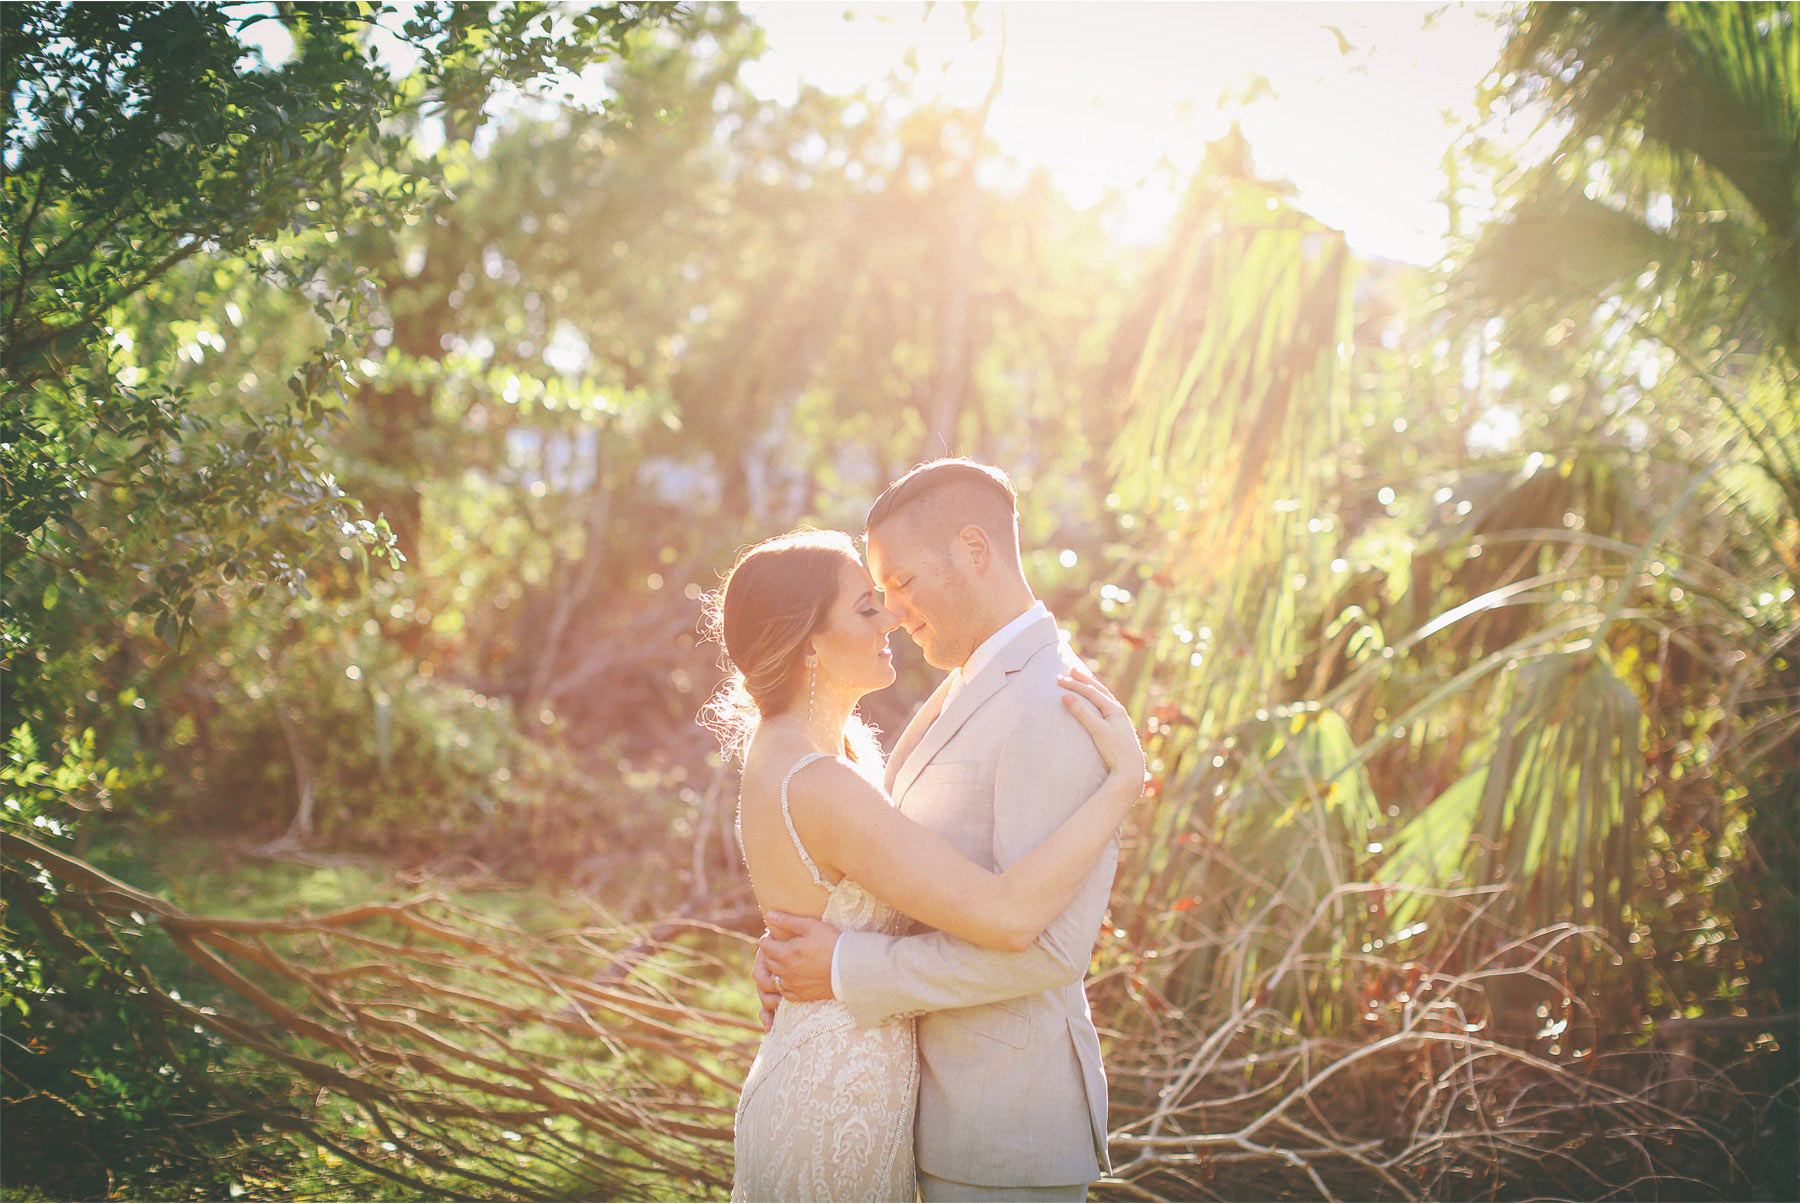 20-Key-Largo-Florida-Keys-Wedding-Photographer-by-Andrew-Vick-Photography-Playa-Largo-Resort-and-Spa-Hotel-Destination-Winter-Wear-It-Again-Bride-Groom-Embrace-Carrie-and-Brian.jpg